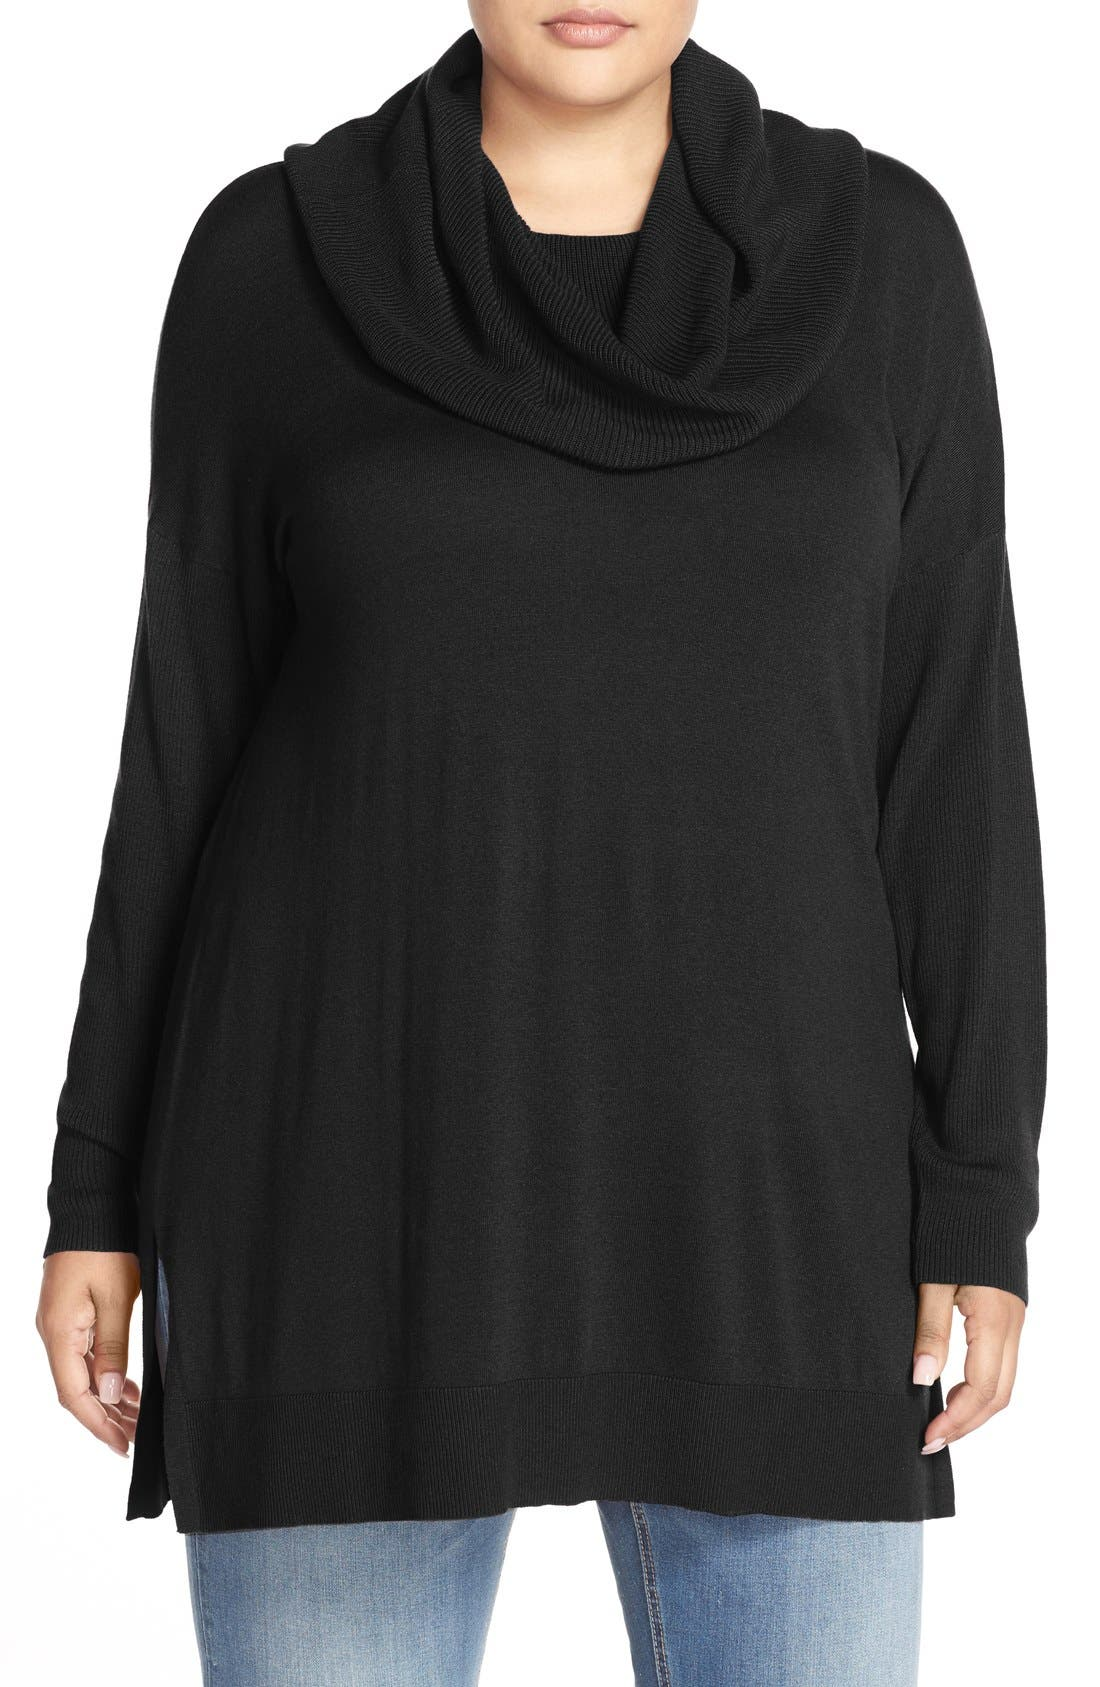 Cowl Neck Tunic Sweater,                             Main thumbnail 1, color,                             003